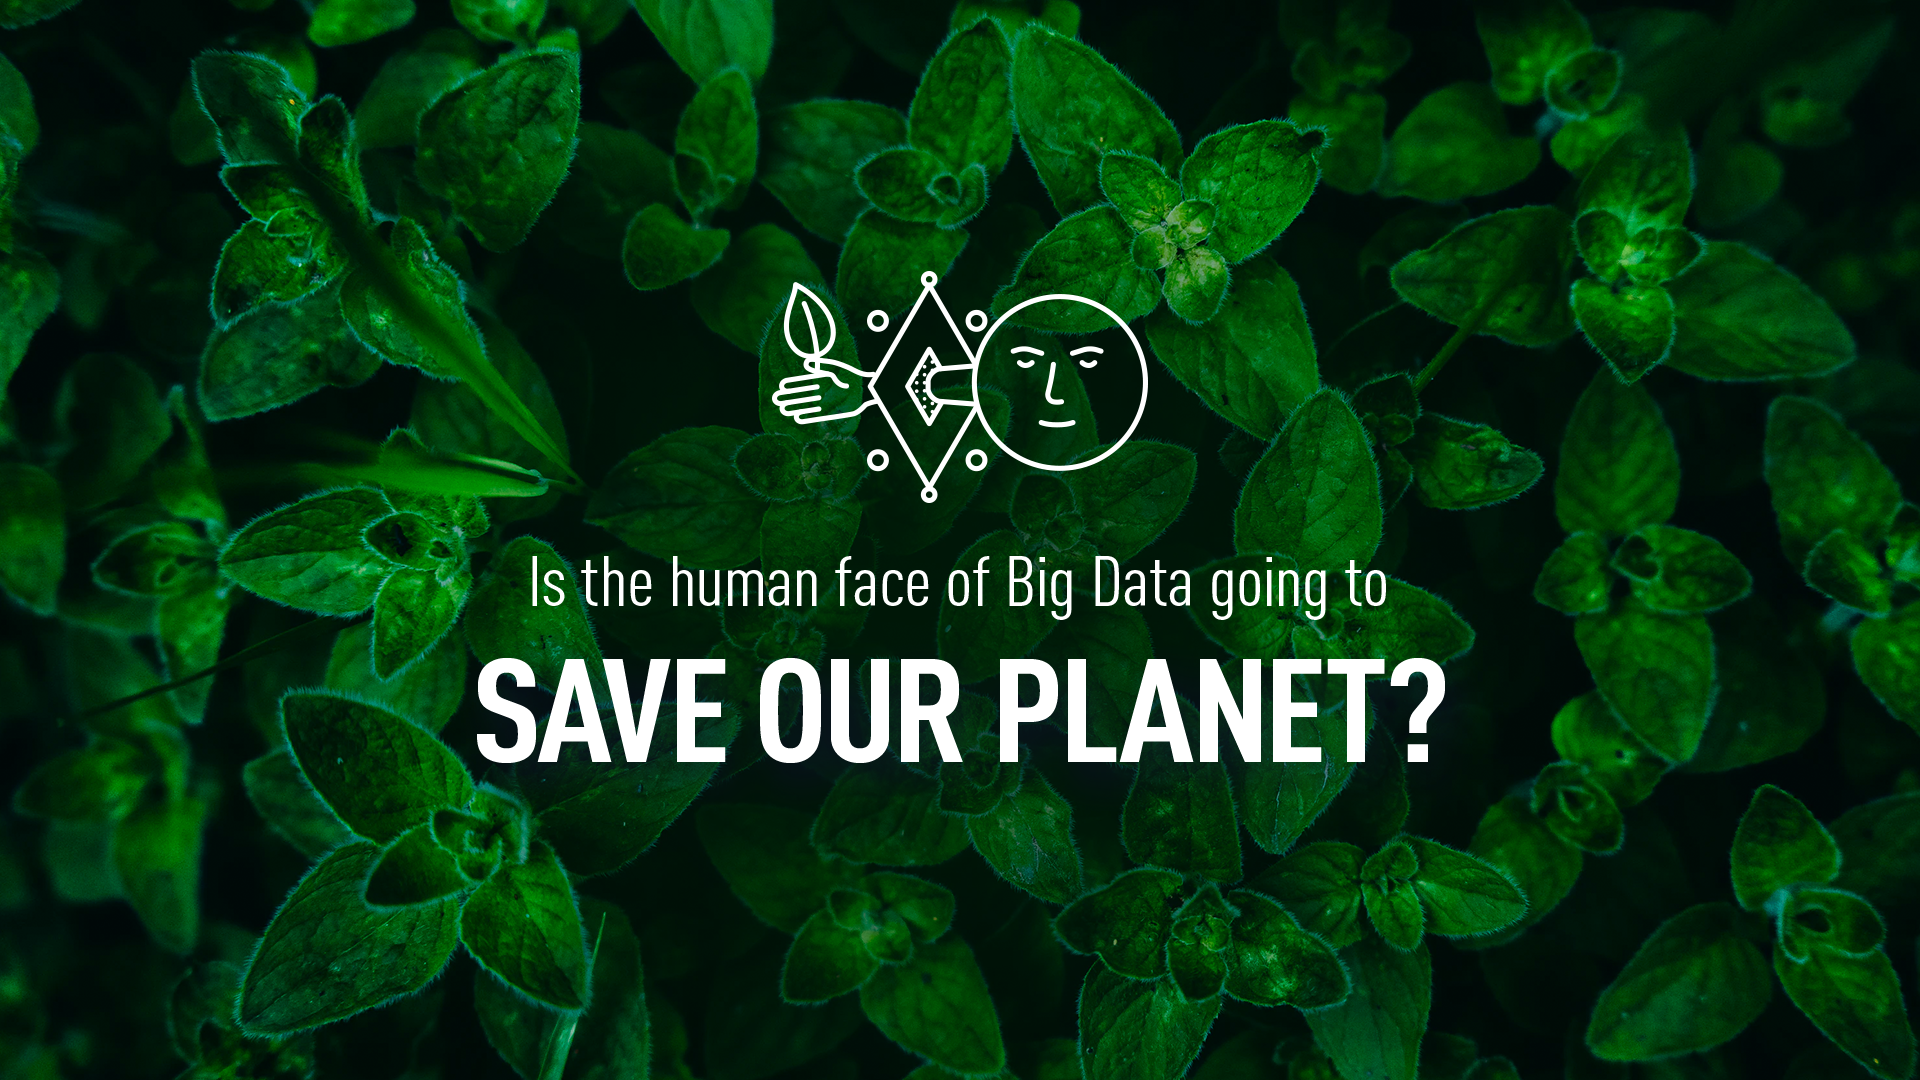 Is the human face of Big Data going to save our planet?